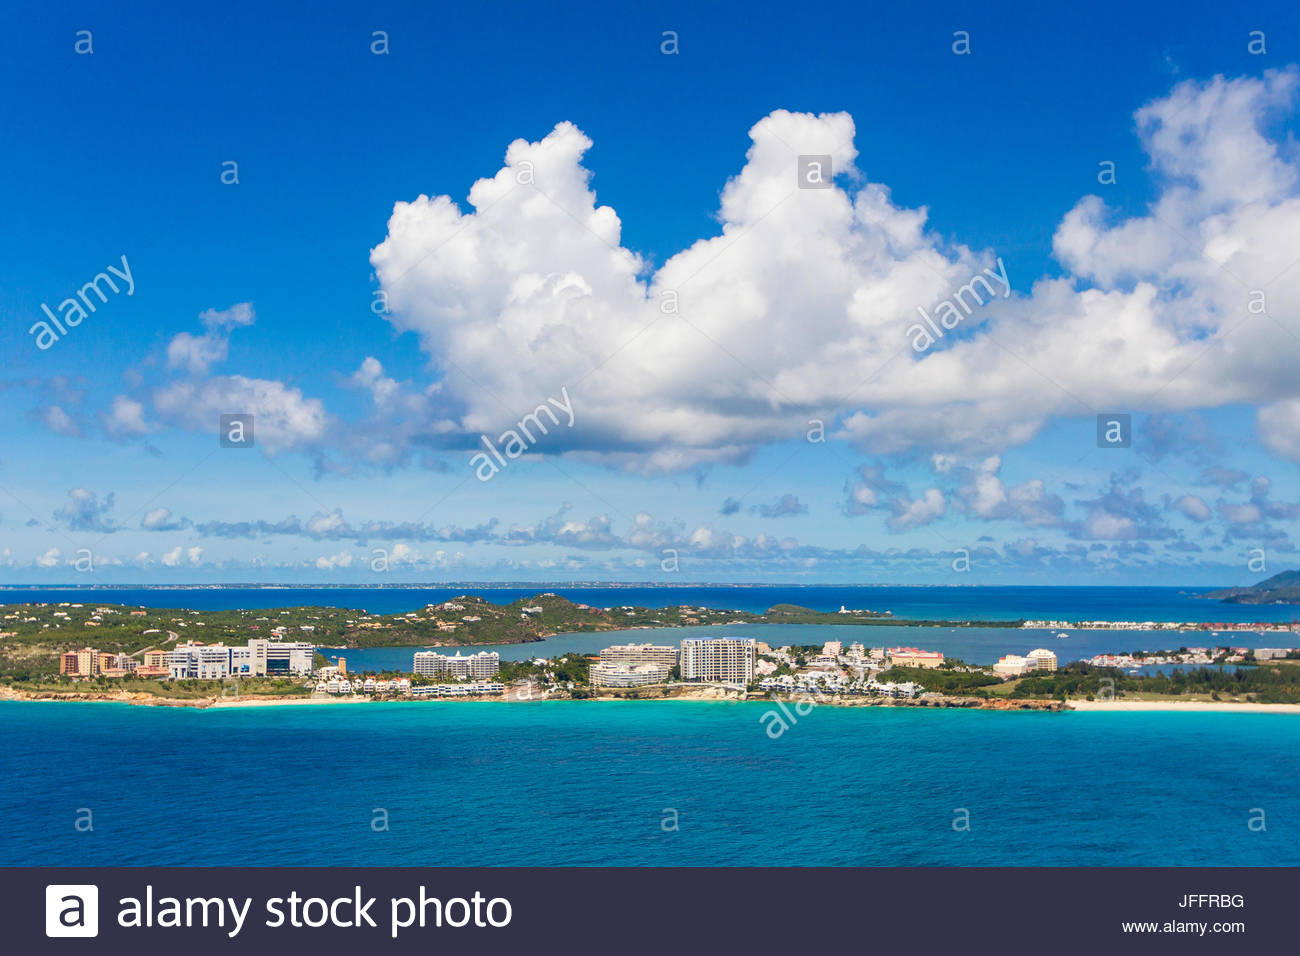 An aerial view of resorts along Maho Beach on Saint Martin Island. - Stock Image